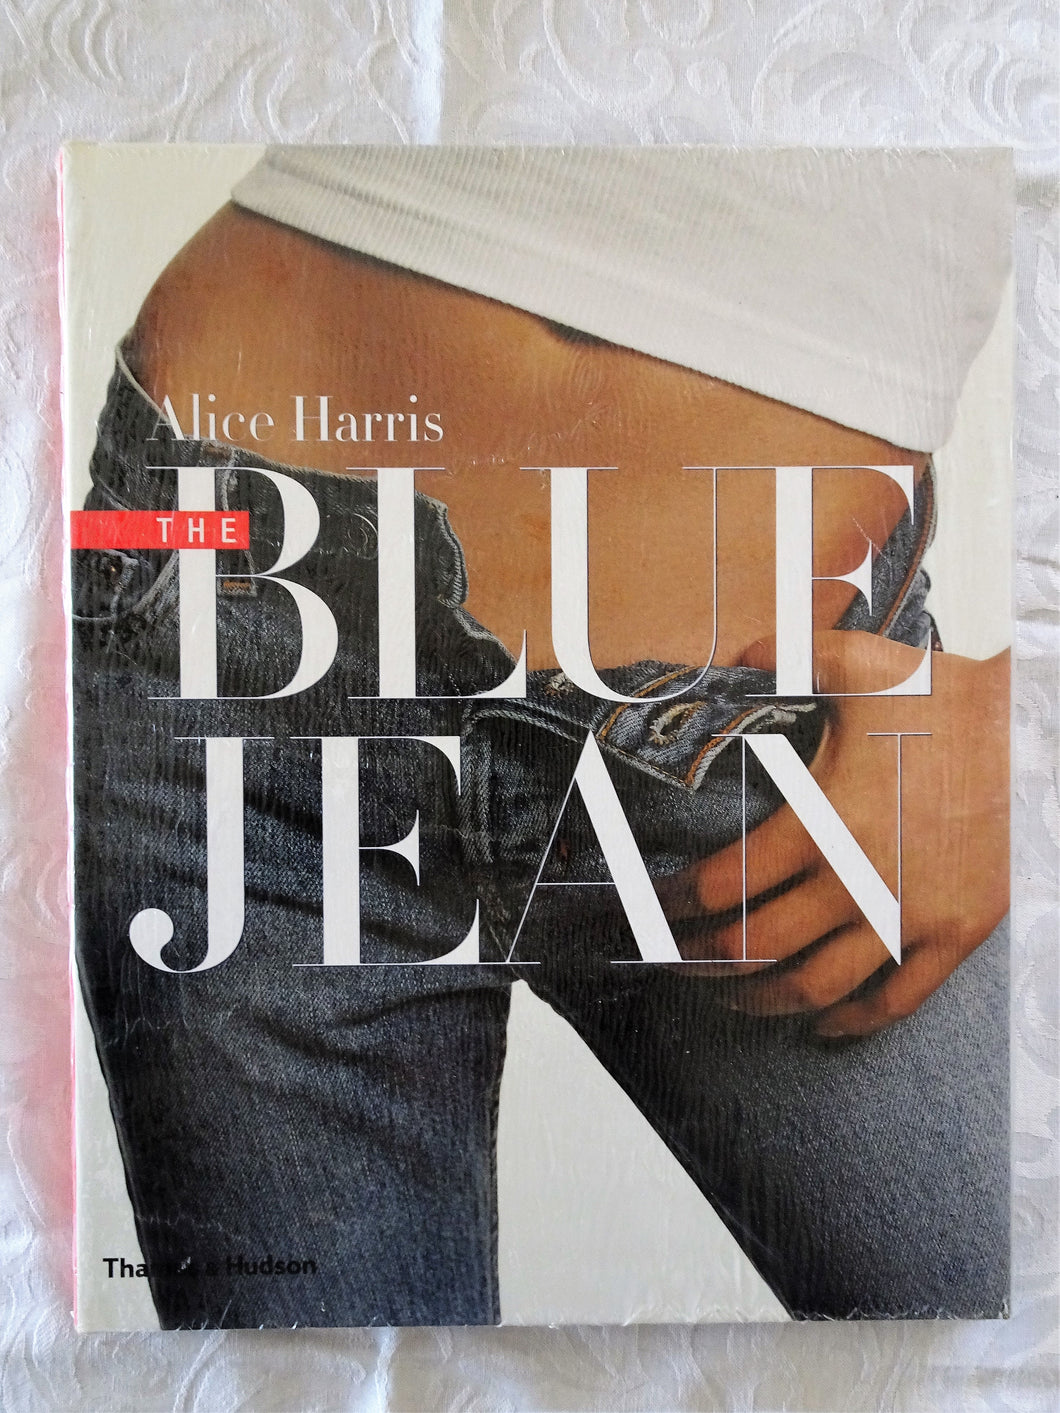 The Blue Jean by Alice Harris